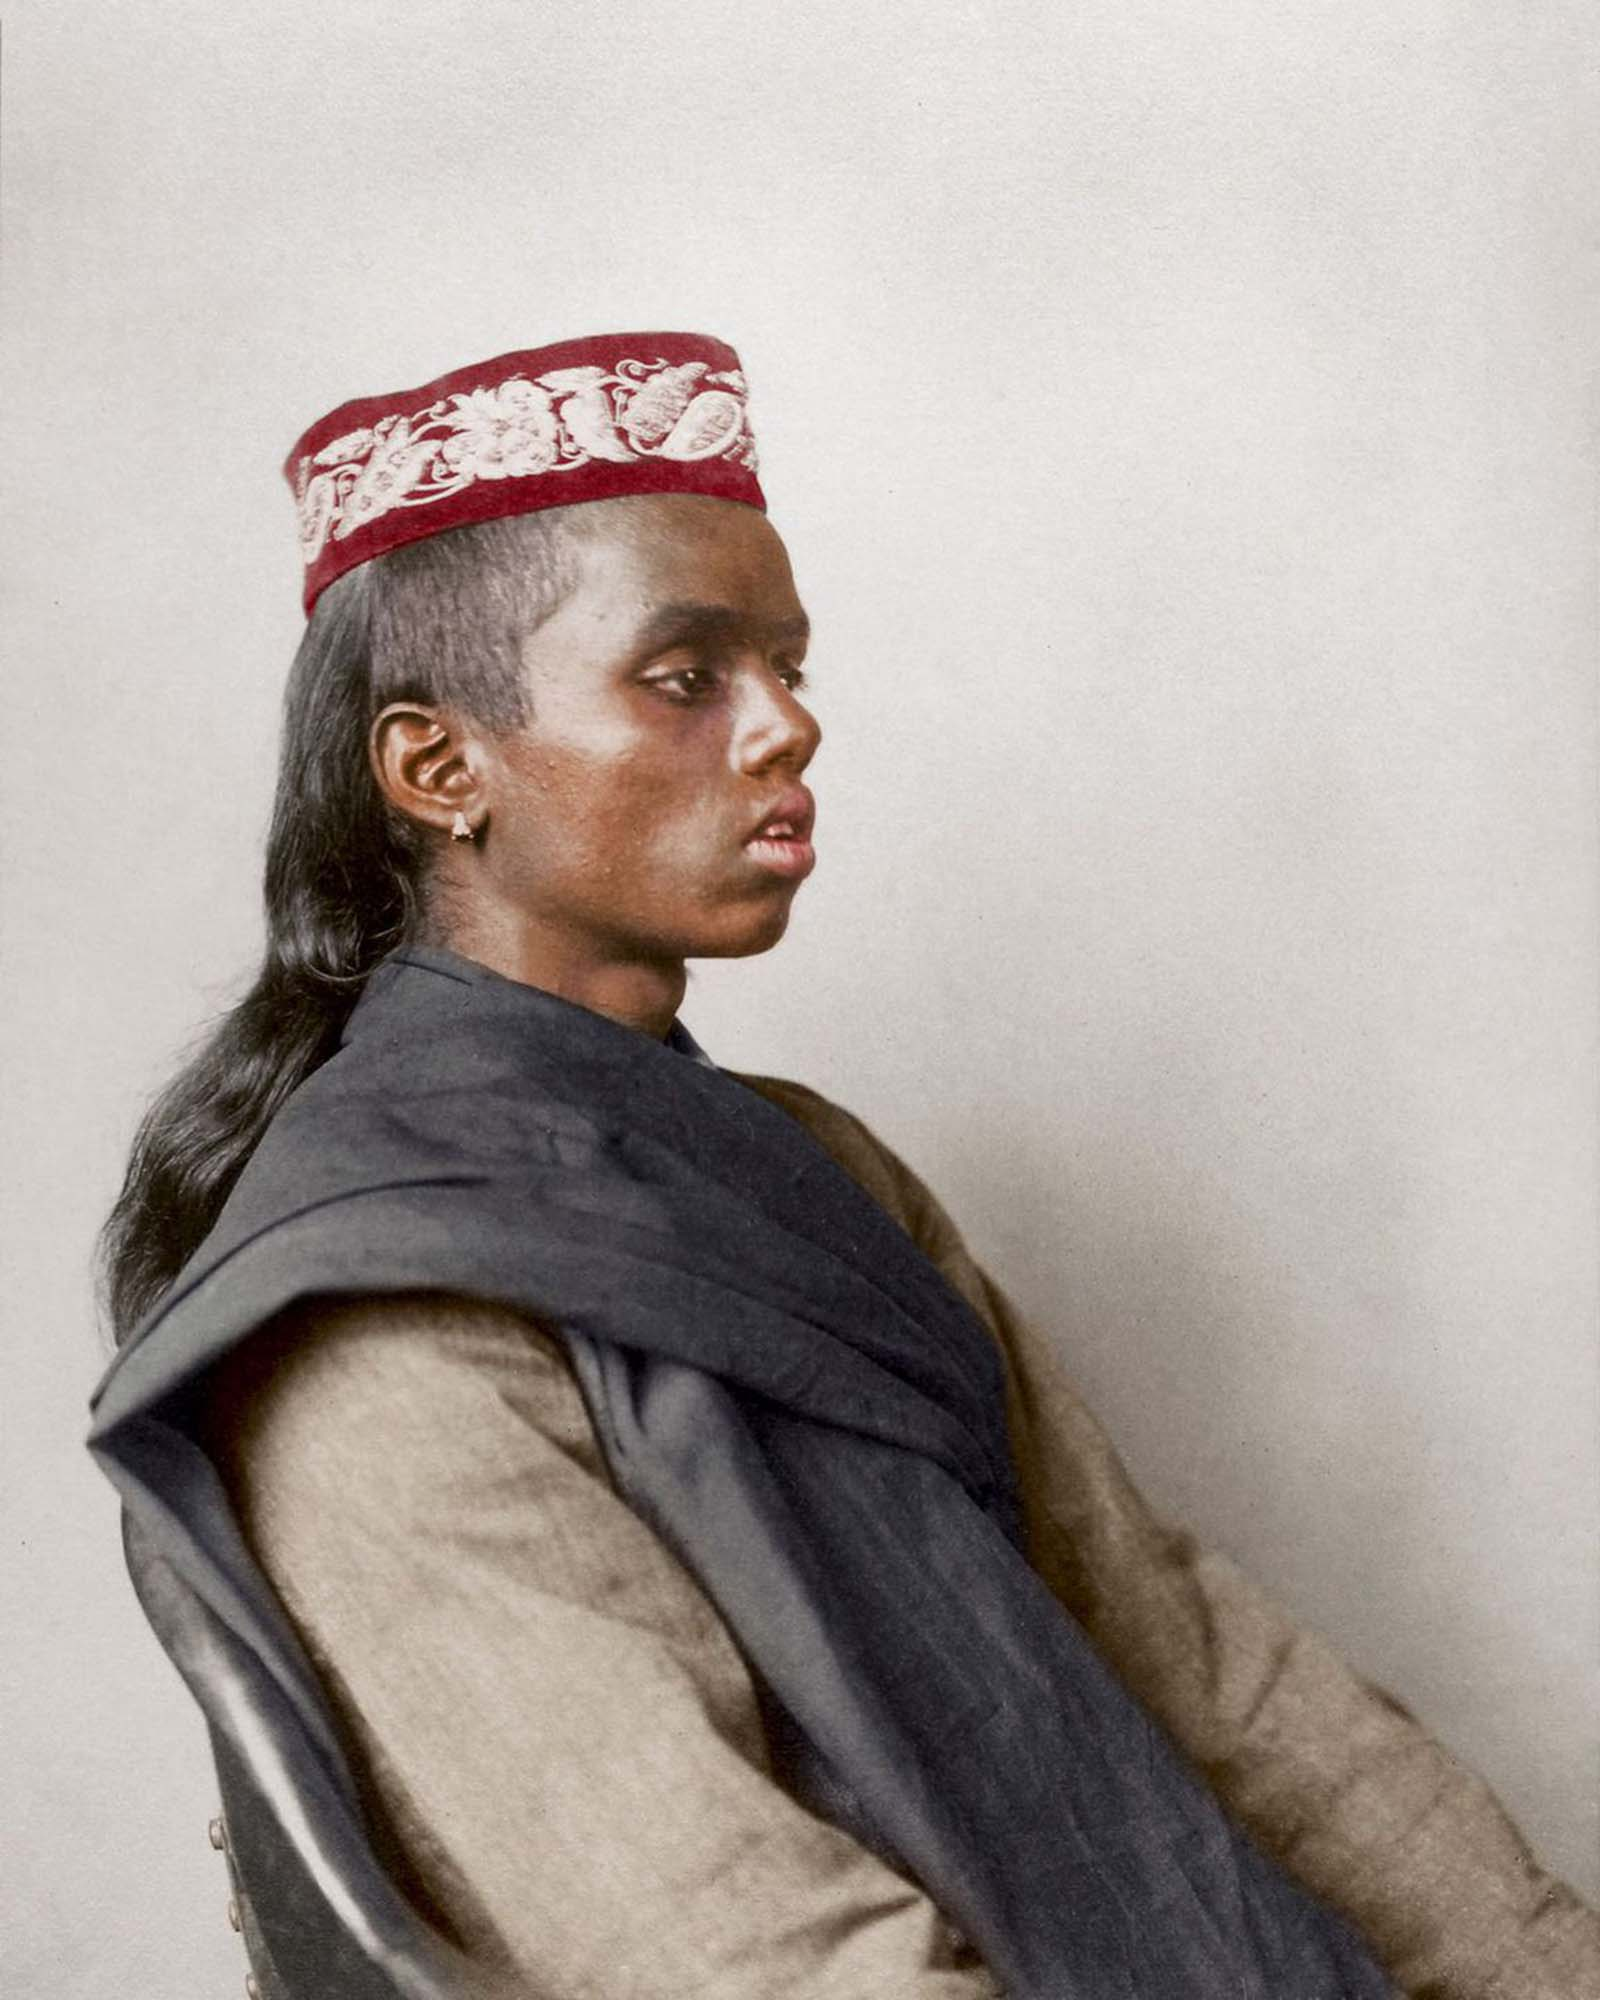 """Hindoo boy."""" The topi (a word to denote """"cap"""") is worn all over the Indian subcontinent with many regional variations and cultural significance, and is especially popular in Muslim communities, where it is known as a taqiyah. Both the cotton khadi and the prayer shawl are most likely handspun on a c"""